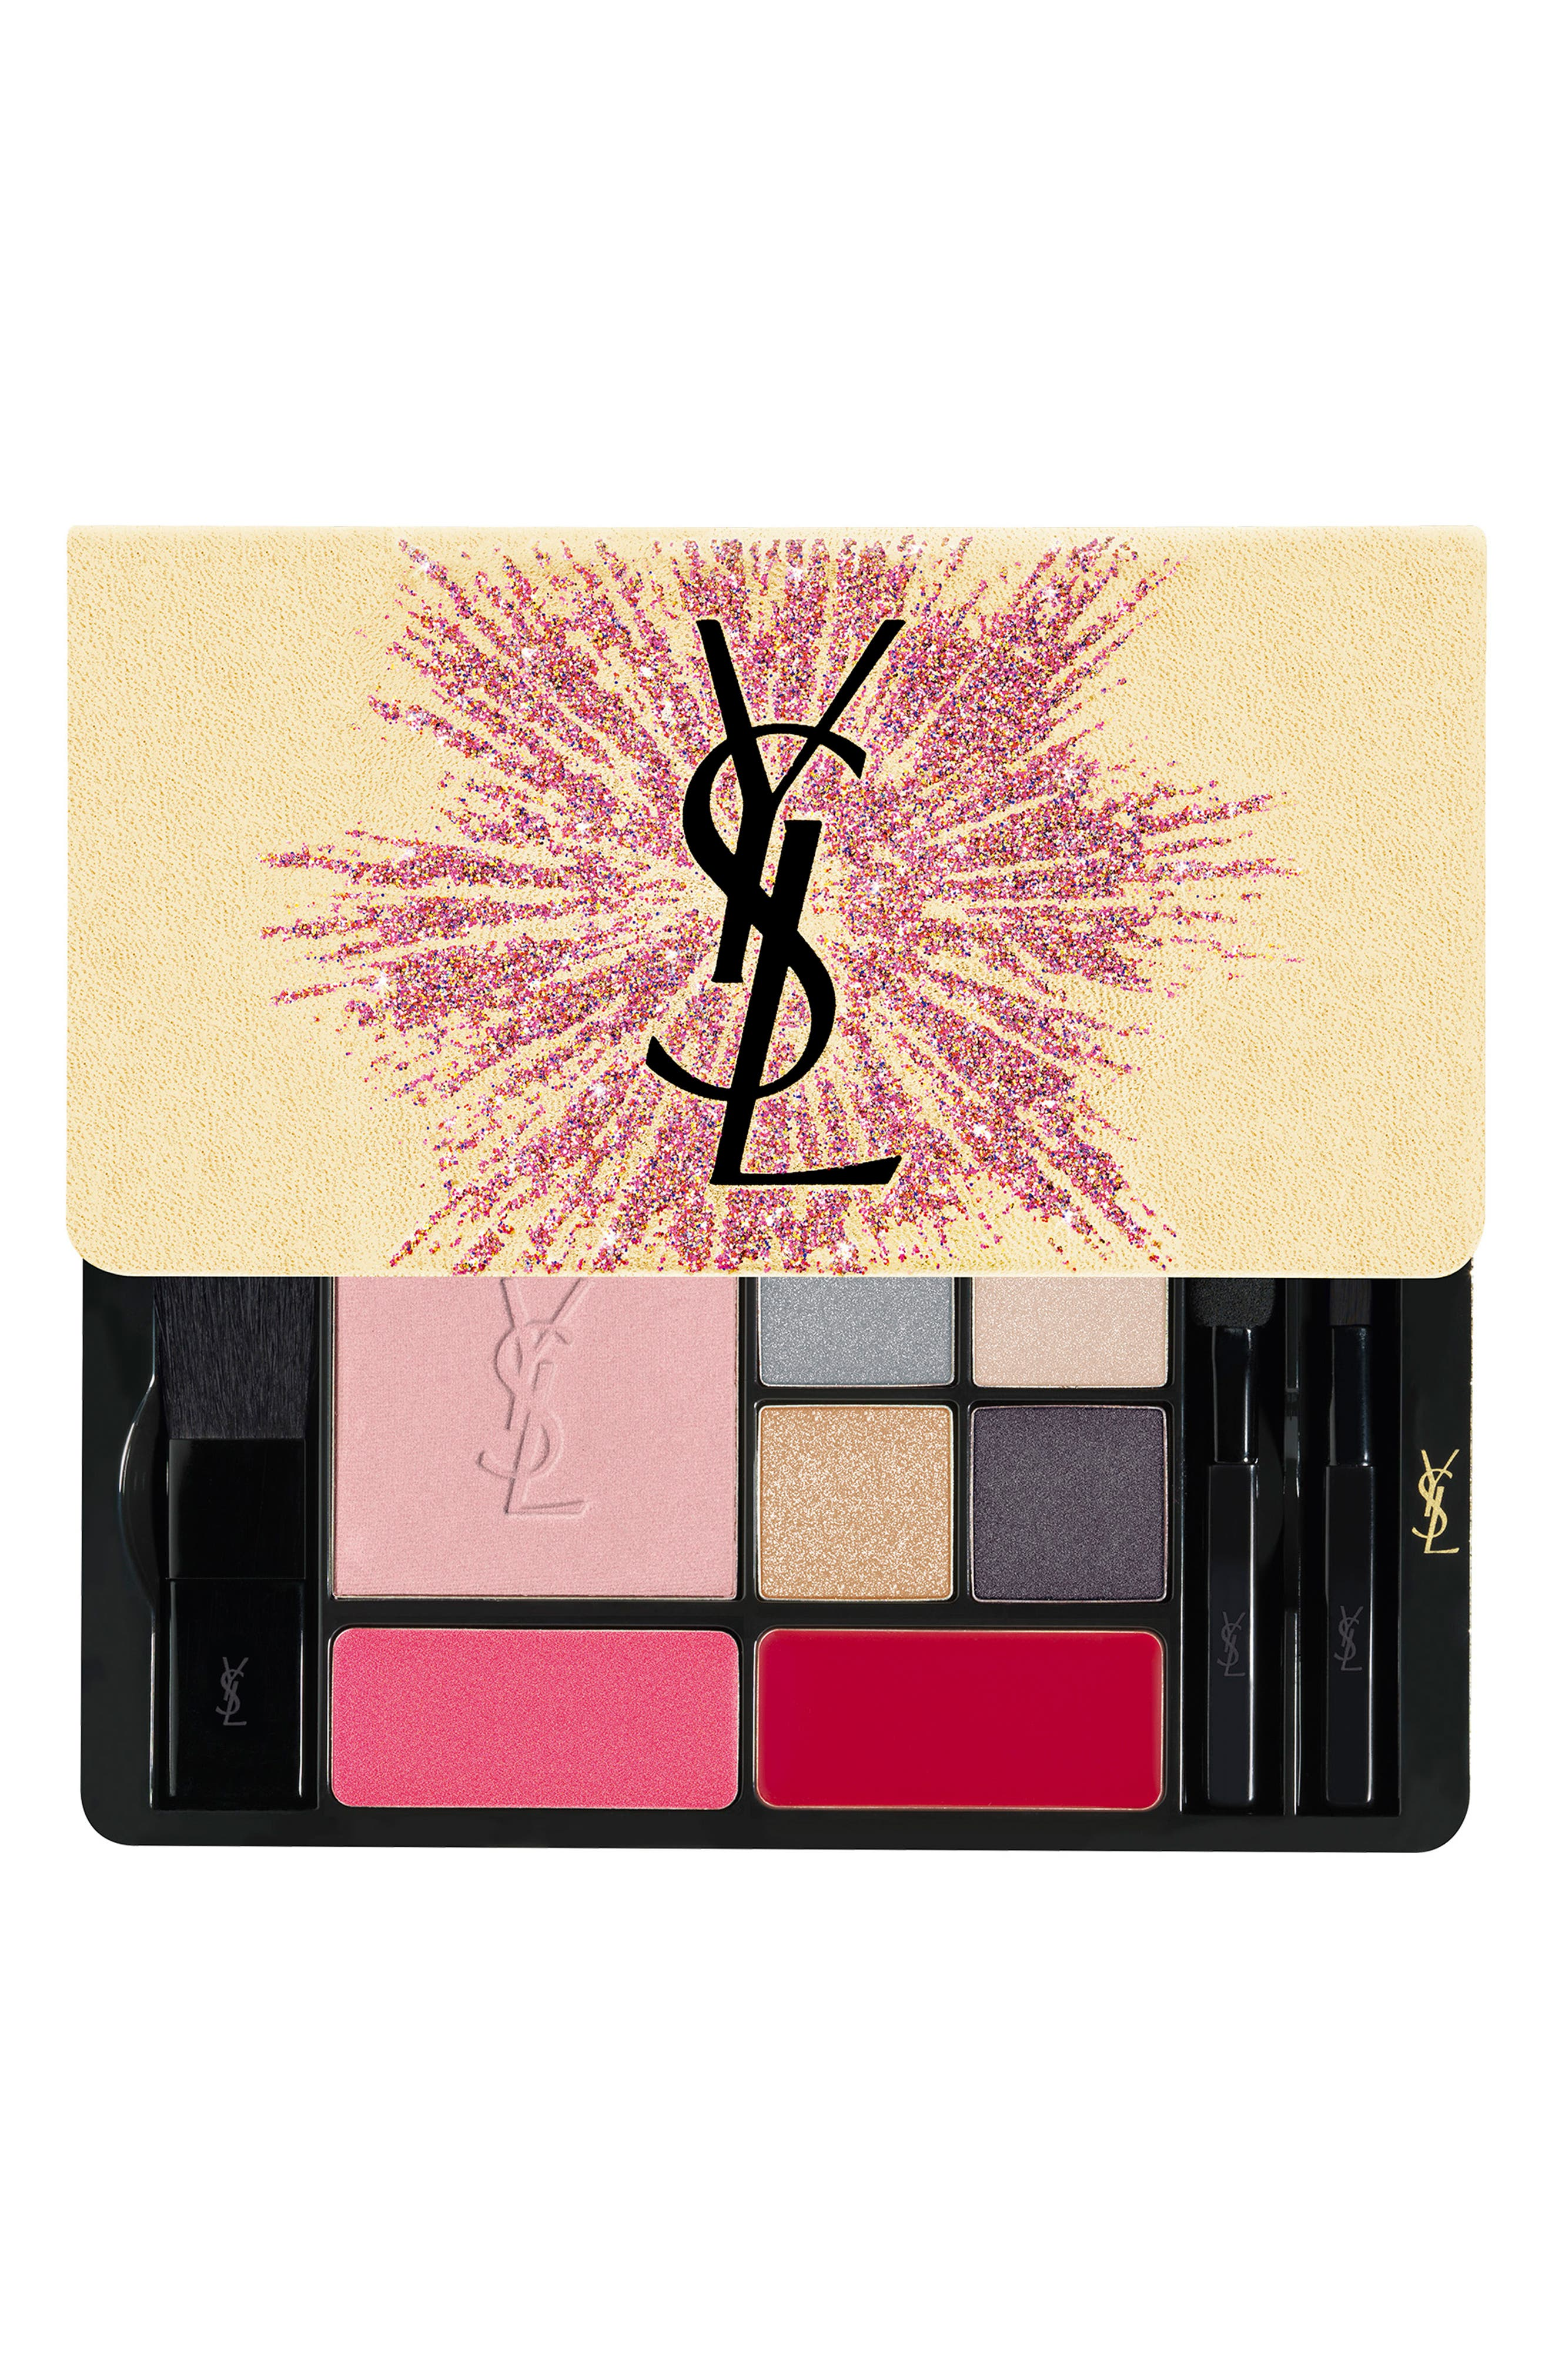 Yves Saint Laurent Dazzling Lights Makeup Palette (Limited Edition)